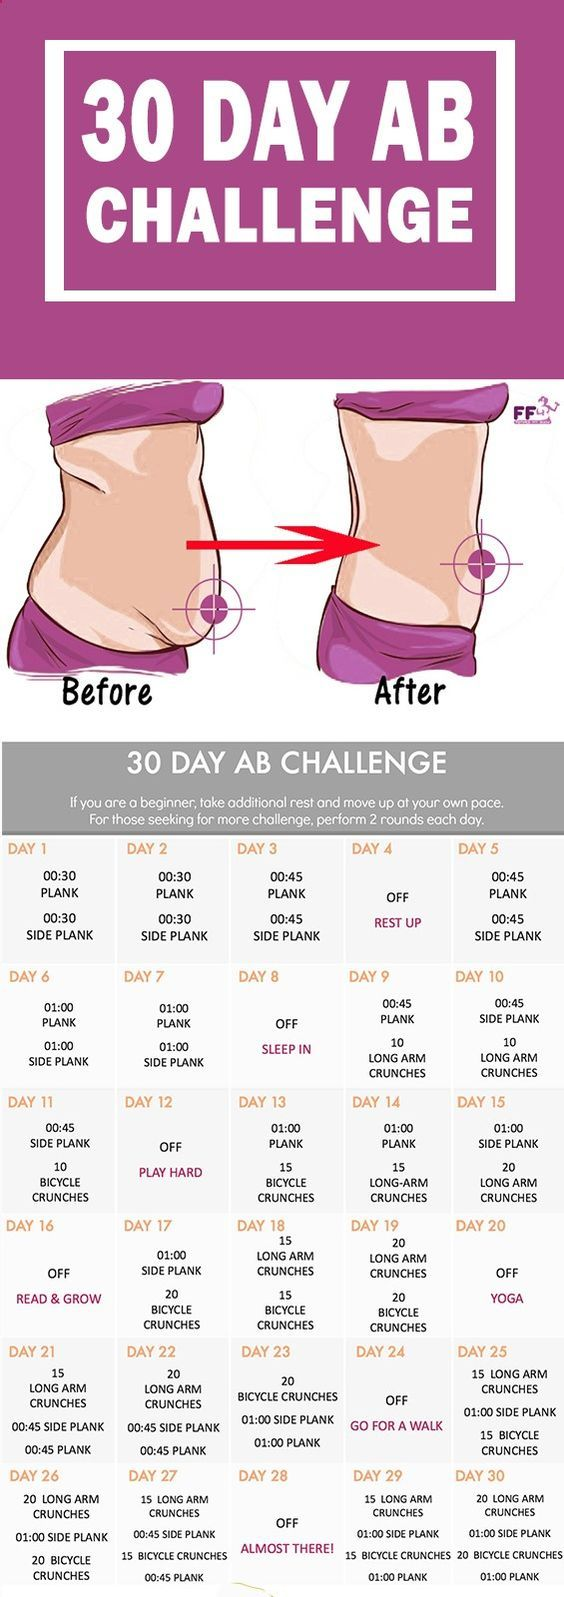 30 day ab challenge | Posted By: CustomWeightLossProgram.com